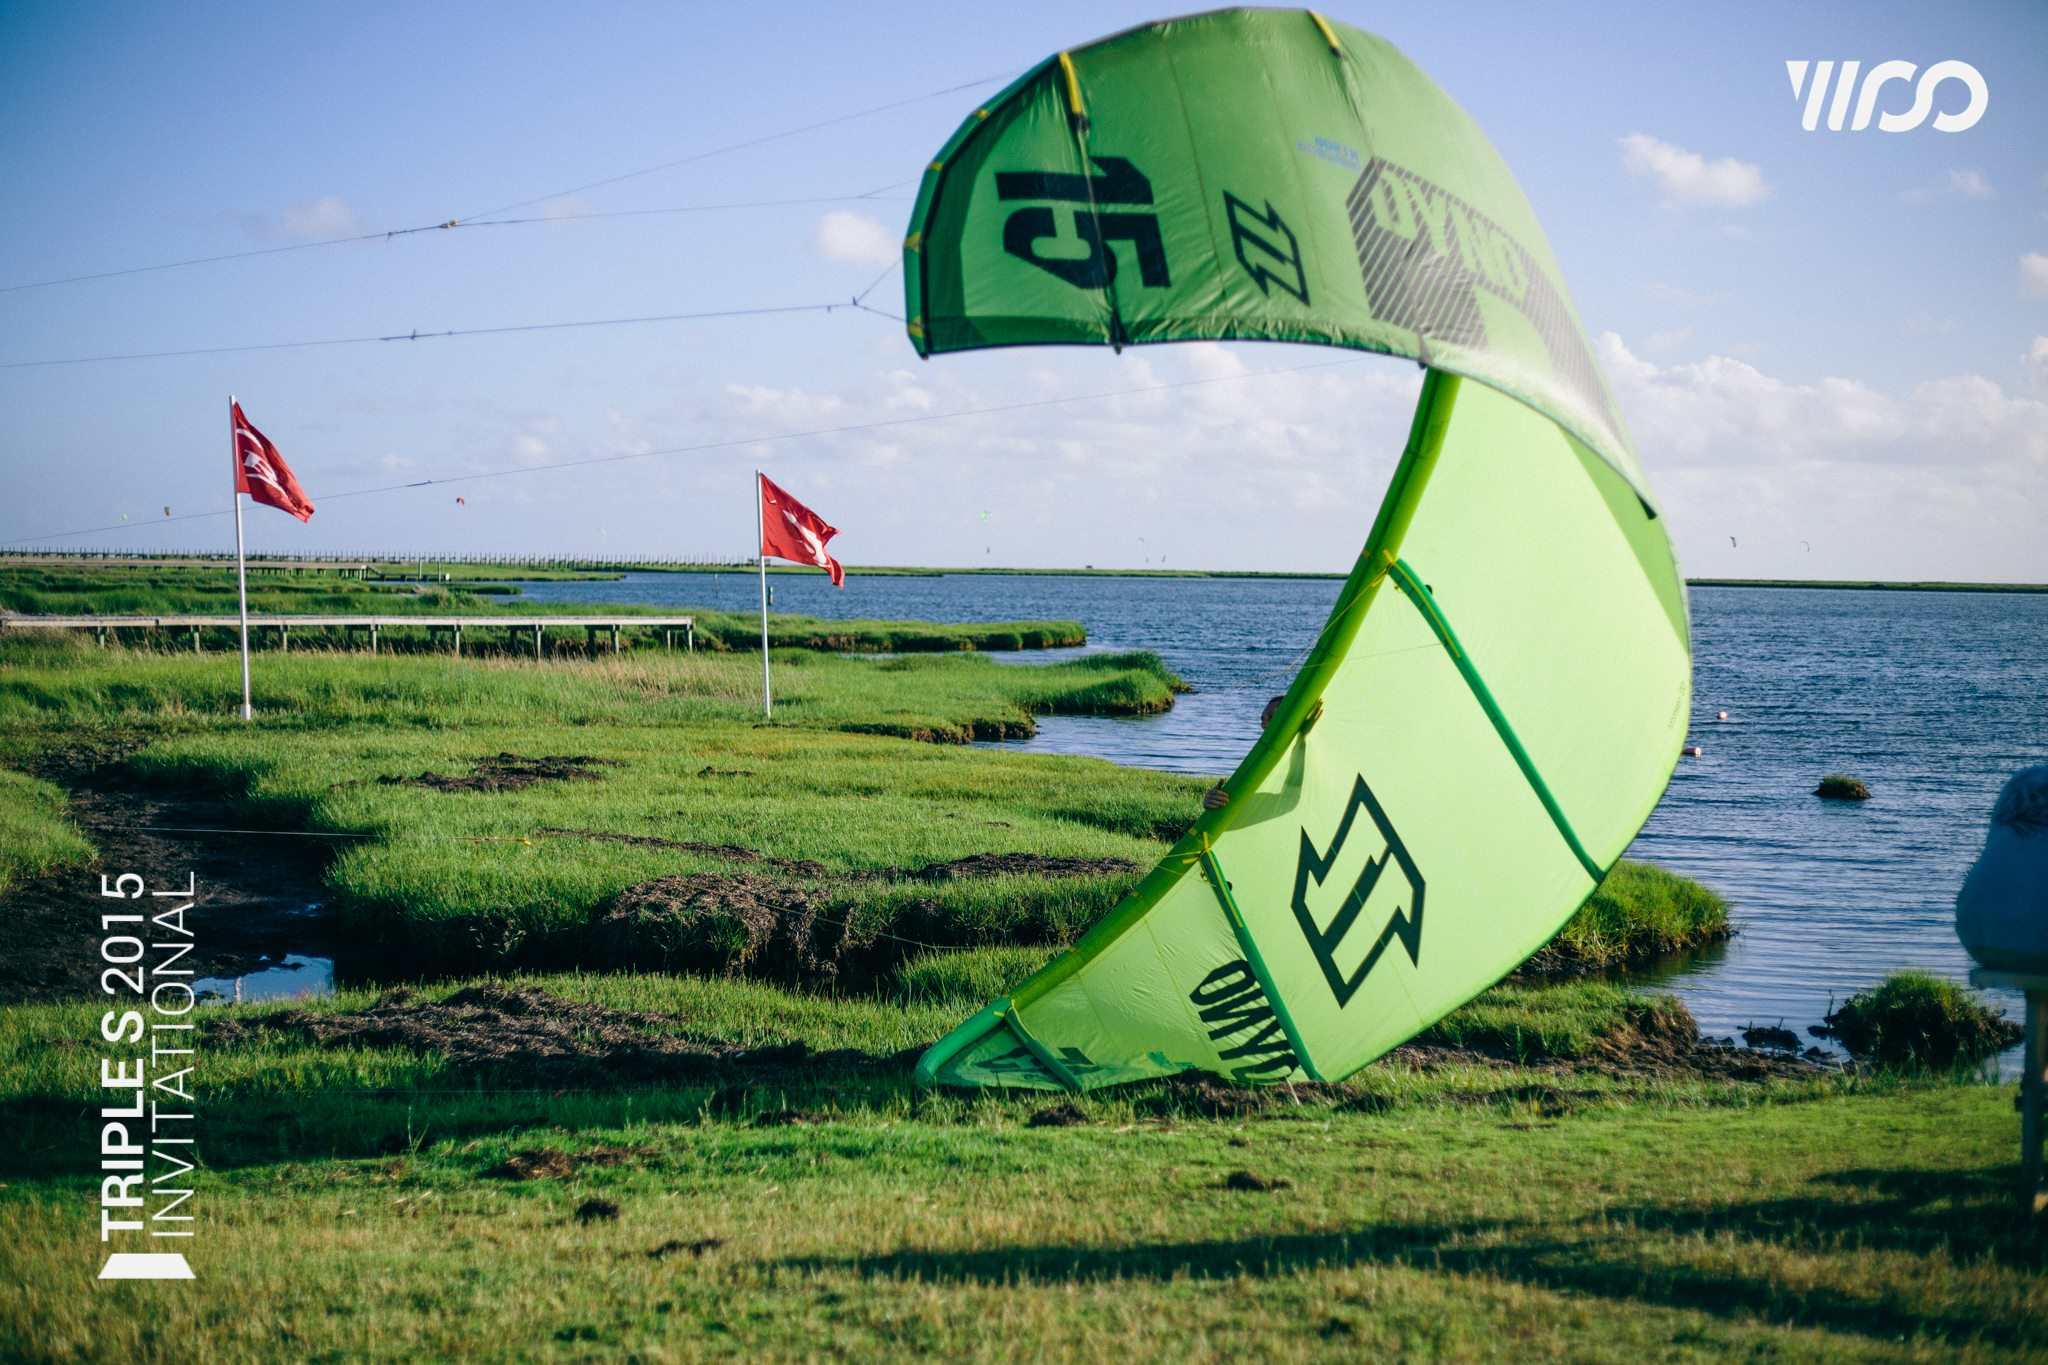 North Kiteboarding, Venyu Triple S Invitational